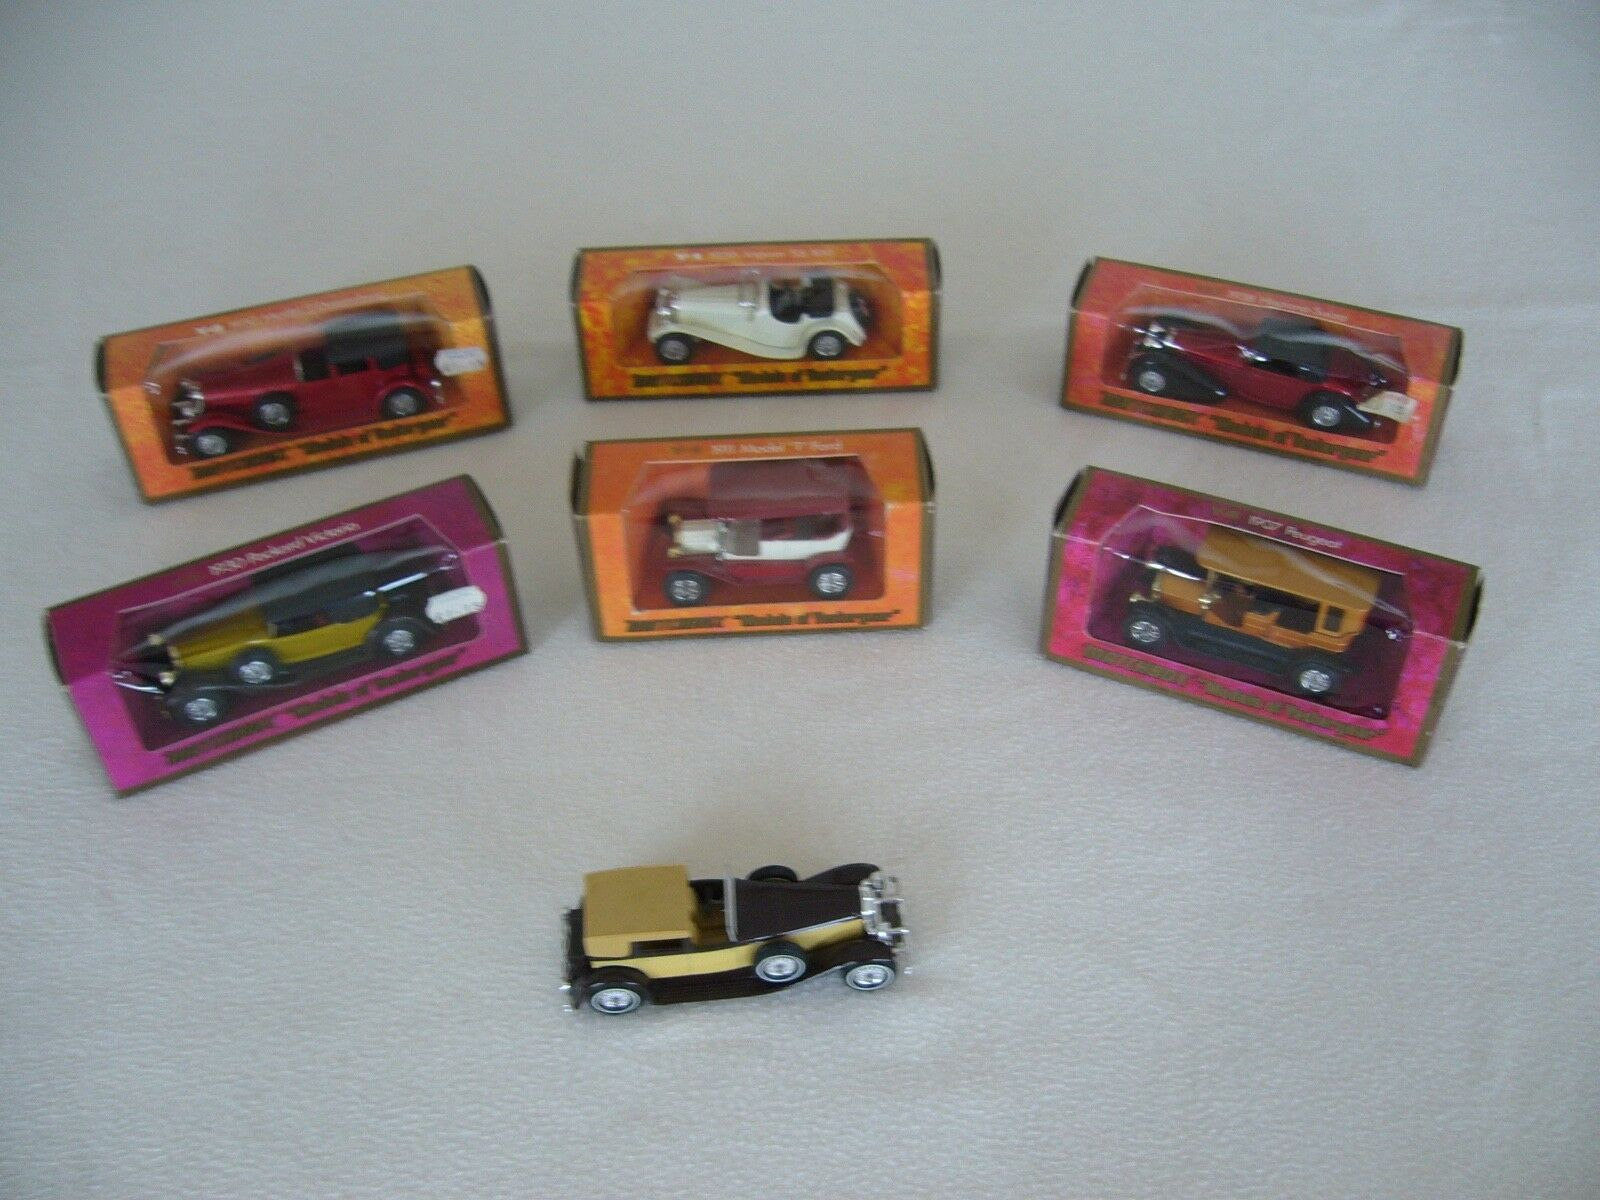 MATCHBOX MODELS OF YESTERYEAR. 6 BOXED CARS + 1 UNBOXED. ALL RARER MODELS